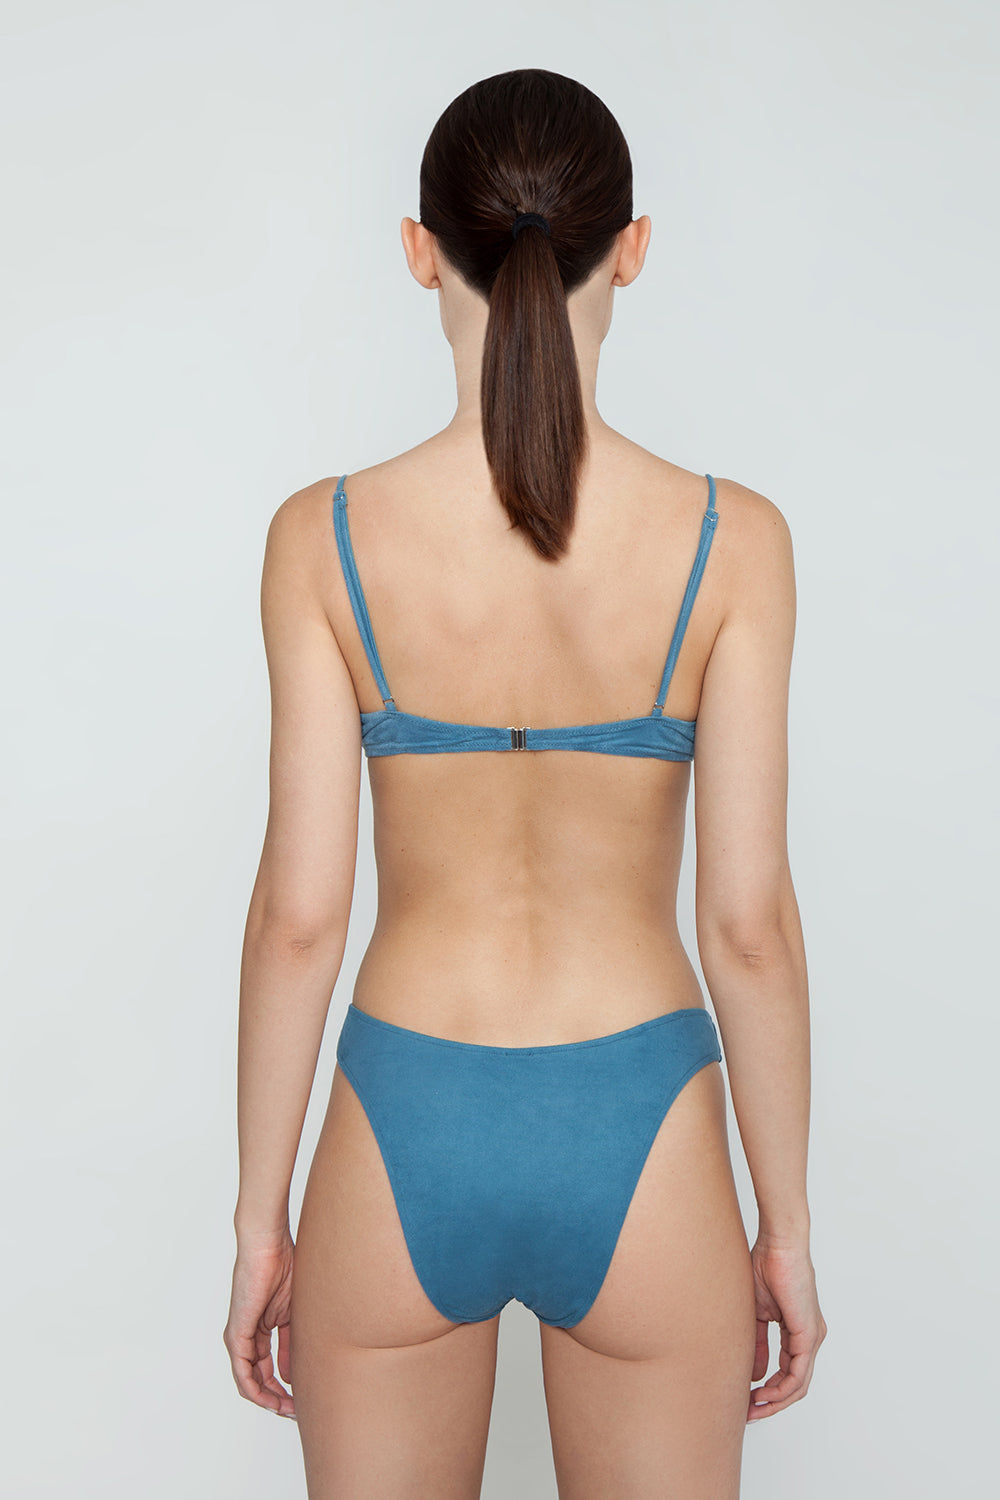 MONICA HANSEN BEACHWEAR Start Me Up Underwire Bikini Top - Blue Bikini Top | Blue| Monica Hansen Beachwear Start Me Up Underwire Bikini Top - Blue. Underwire Adjustable shoulder straps Metal clasp in back Double fabric on the inside instead of lining Italian fabric 85% Nylon 15% Elastane Manufactured in Italy Hand wash cold.  Dry flat Back View